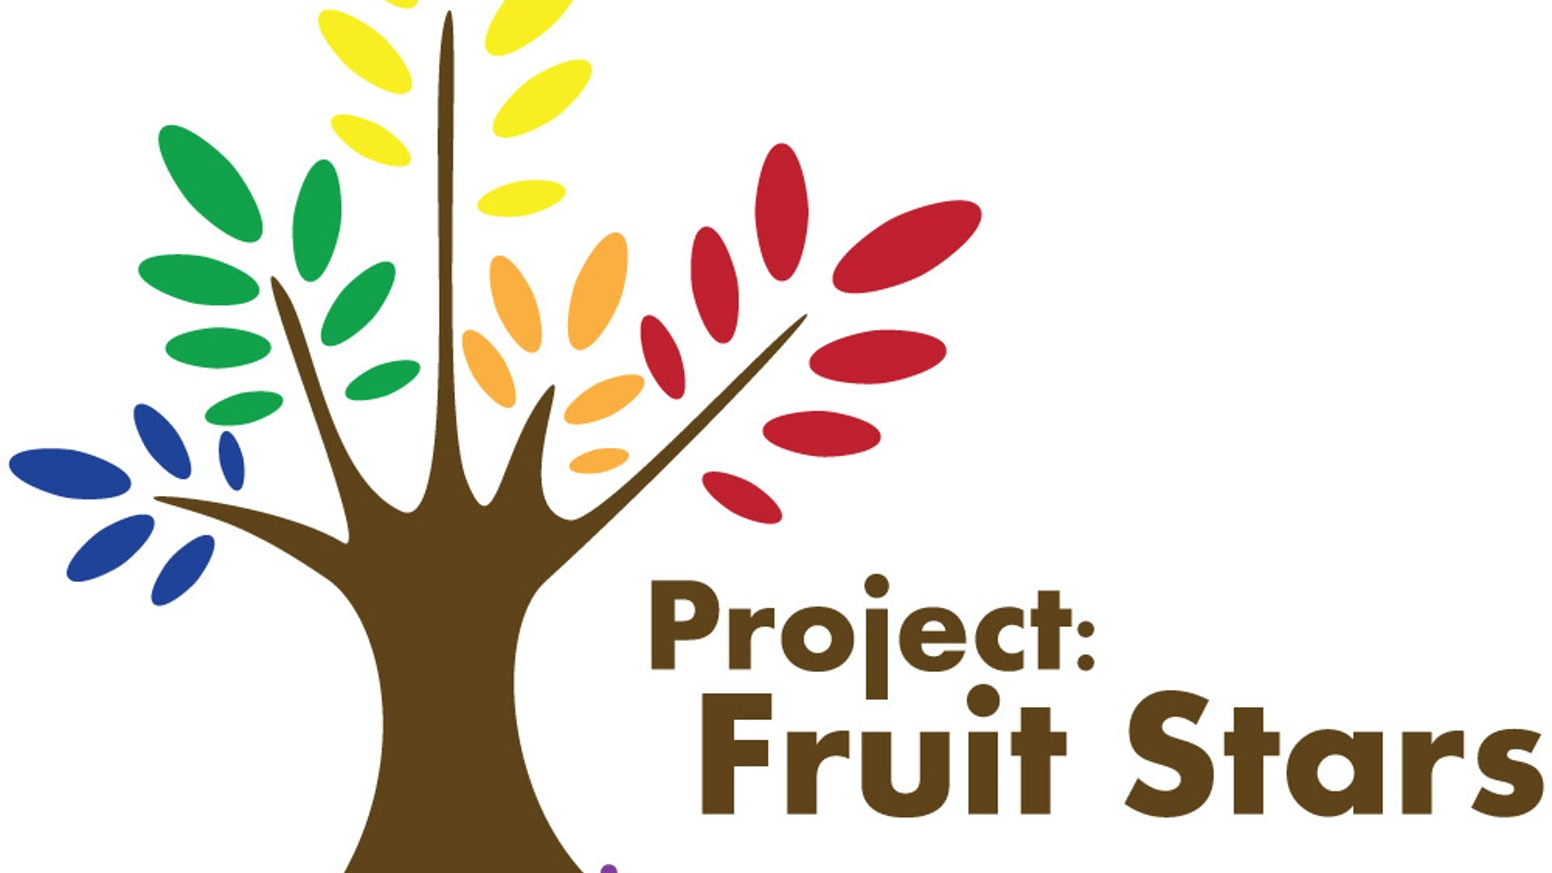 Fruits of Sherbrooke, in partnership with E4C, launch Project: Fruit Stars to help feed hungry kids in our city.